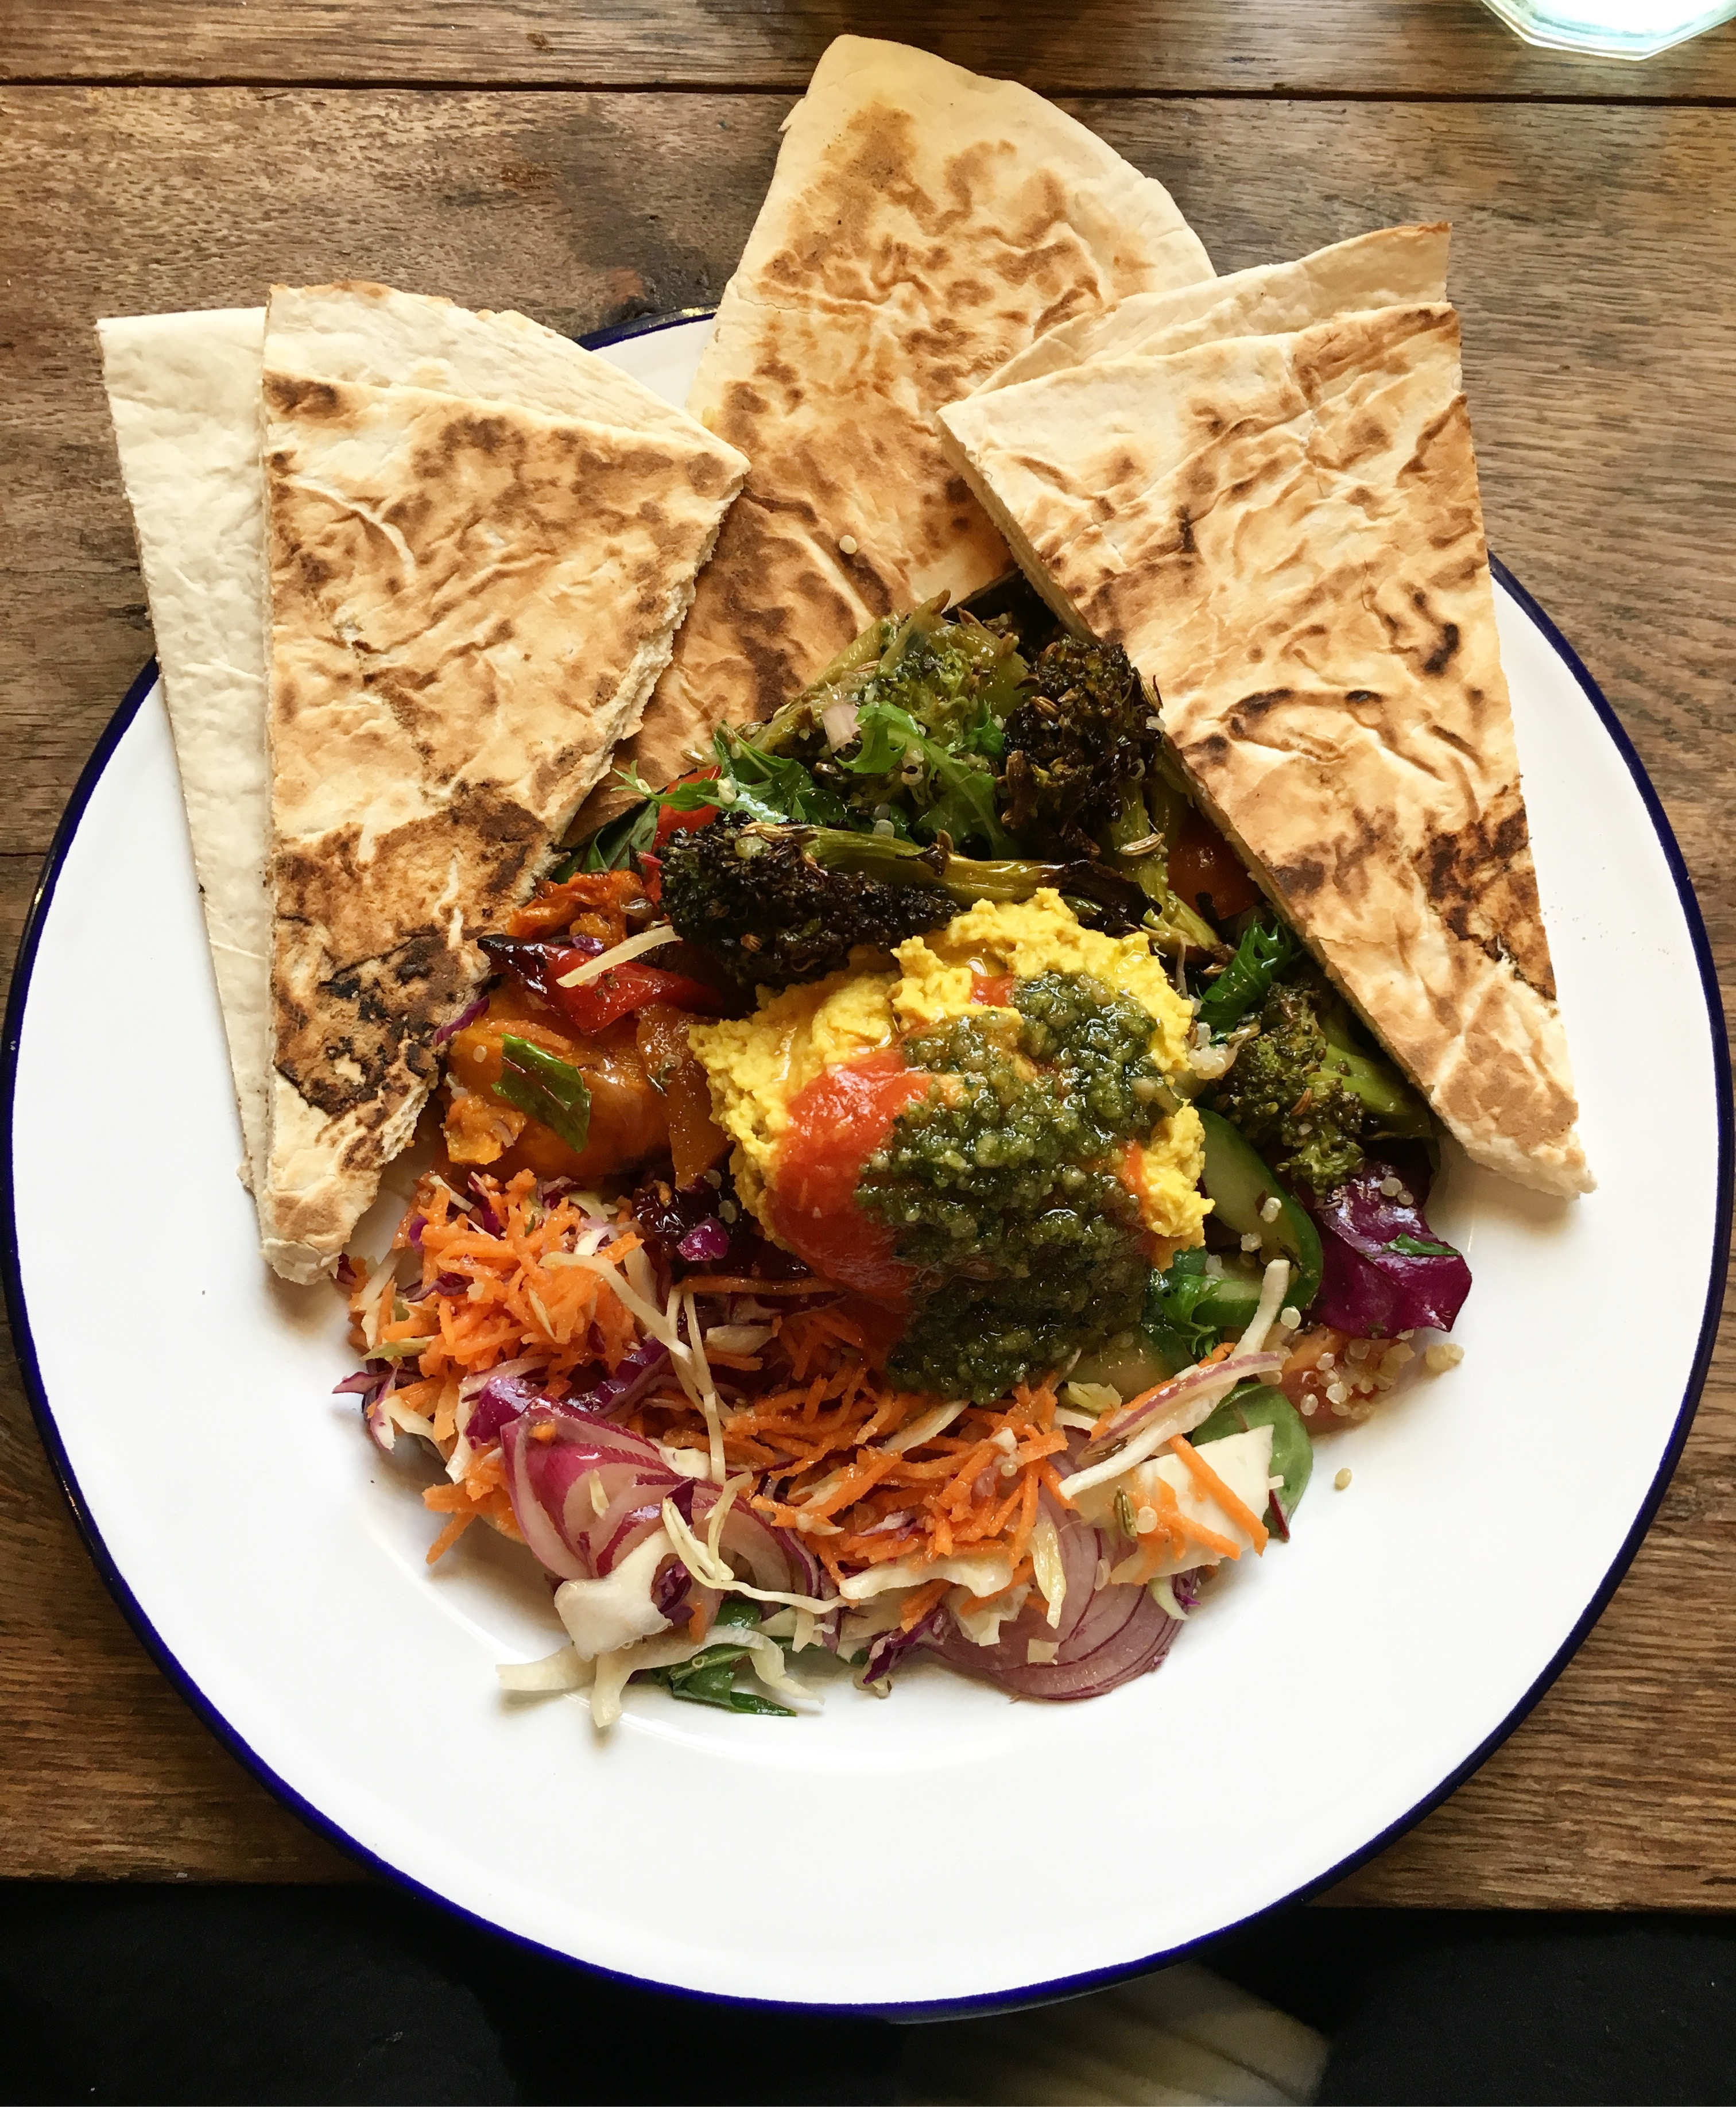 Vegan salad from beyond the kale in bath